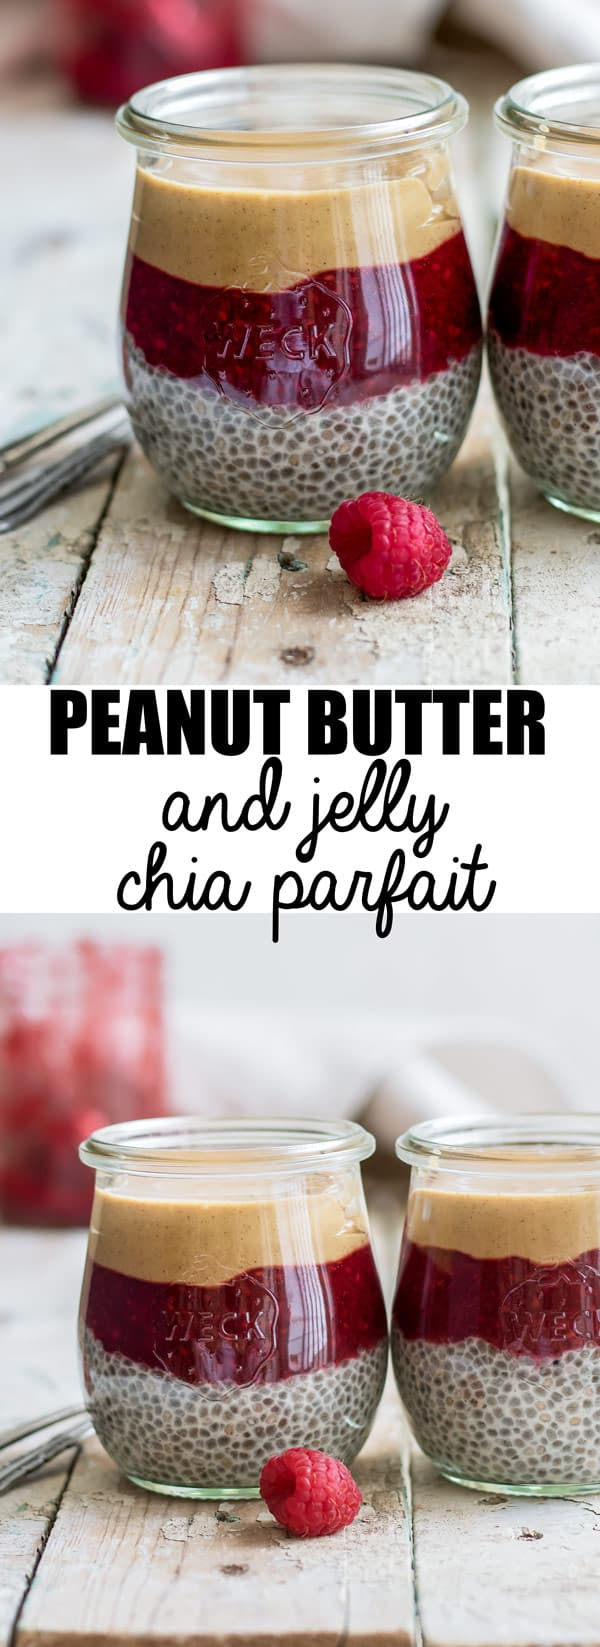 This peanut butter and jelly chia parfait is made with a creamy vanilla almond milk chia pudding base. They then get topped with a quick & easy chia berry jam, and finally finished off with some delicious smooth peanut butter. Enjoy this parfait for breakfast, a healthy snack, or dessert!